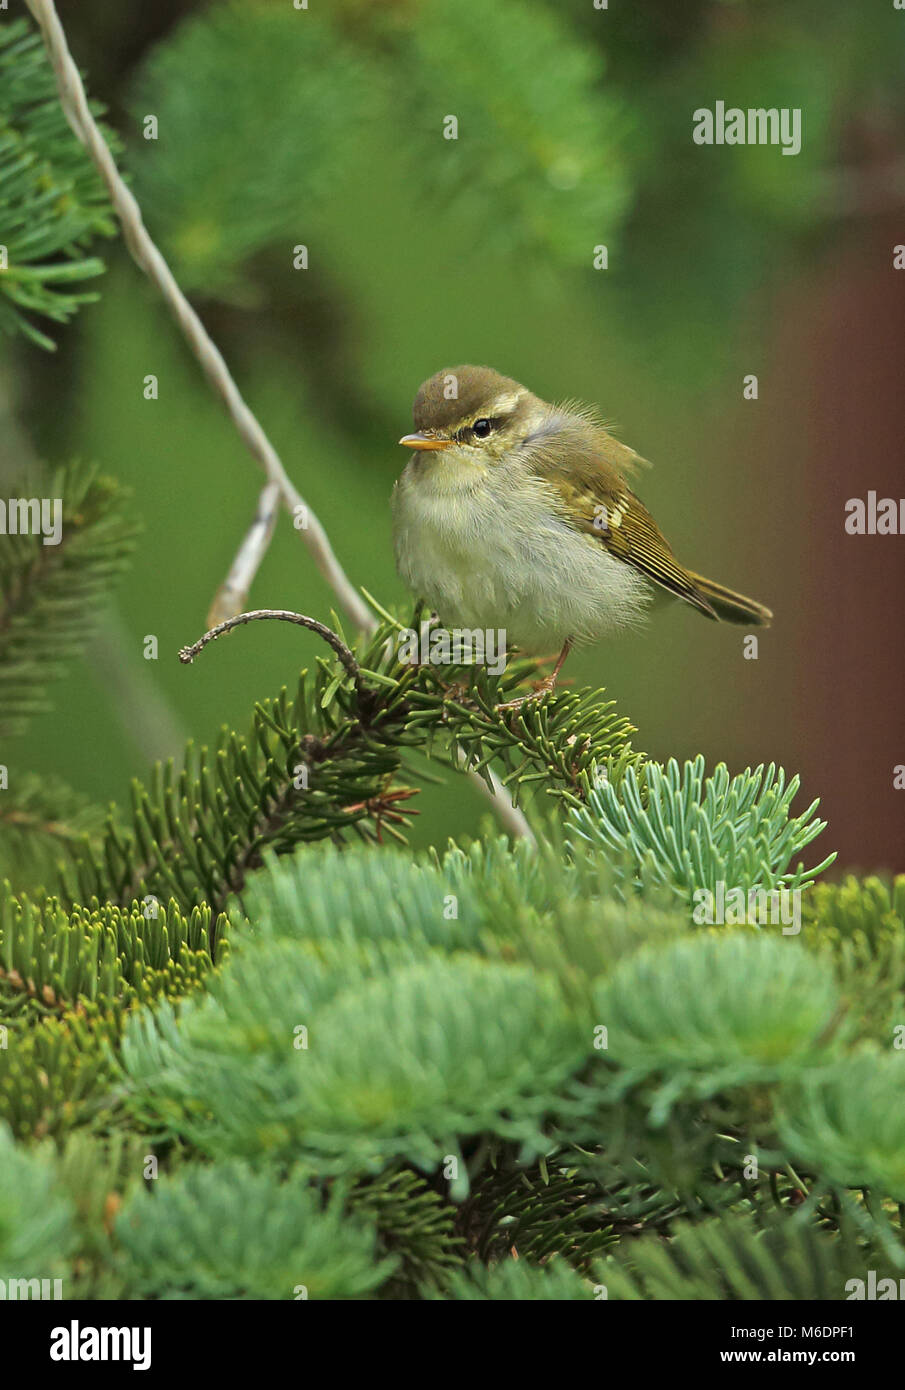 Two-barred Greenish Warbler (Phylloscopus plumbeitarsus) adult perched in conifer  Hebei, China            May Stock Photo